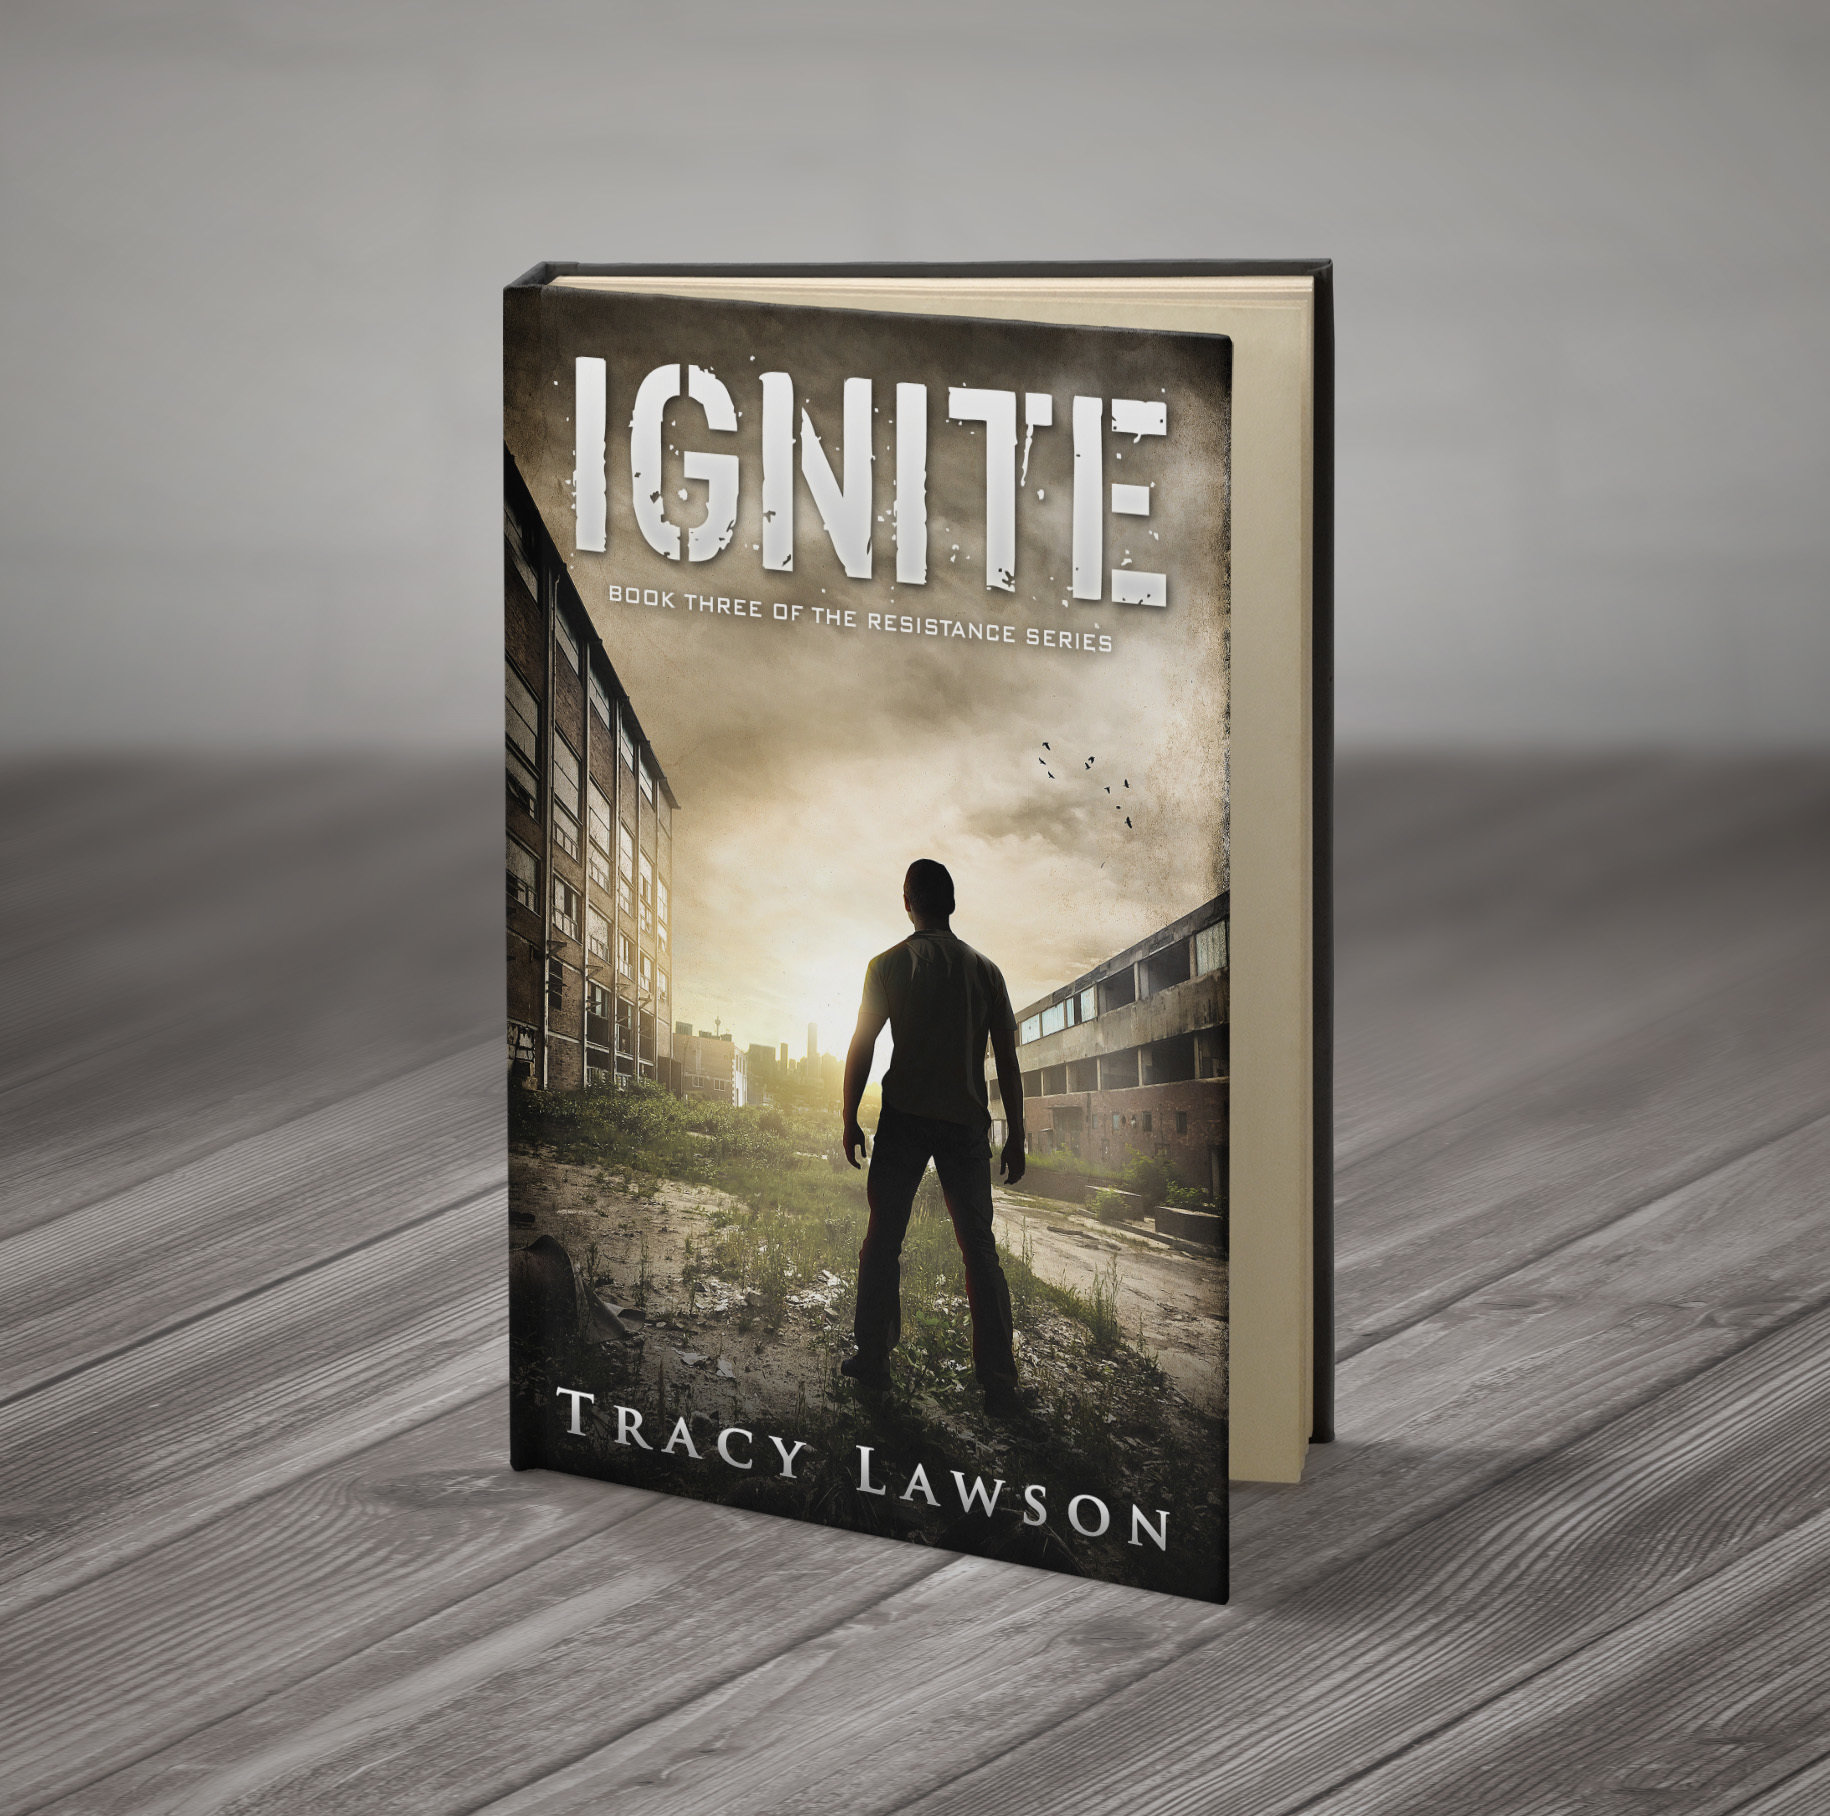 Ignite: Book Three of the Resistance Series (signed) 00002